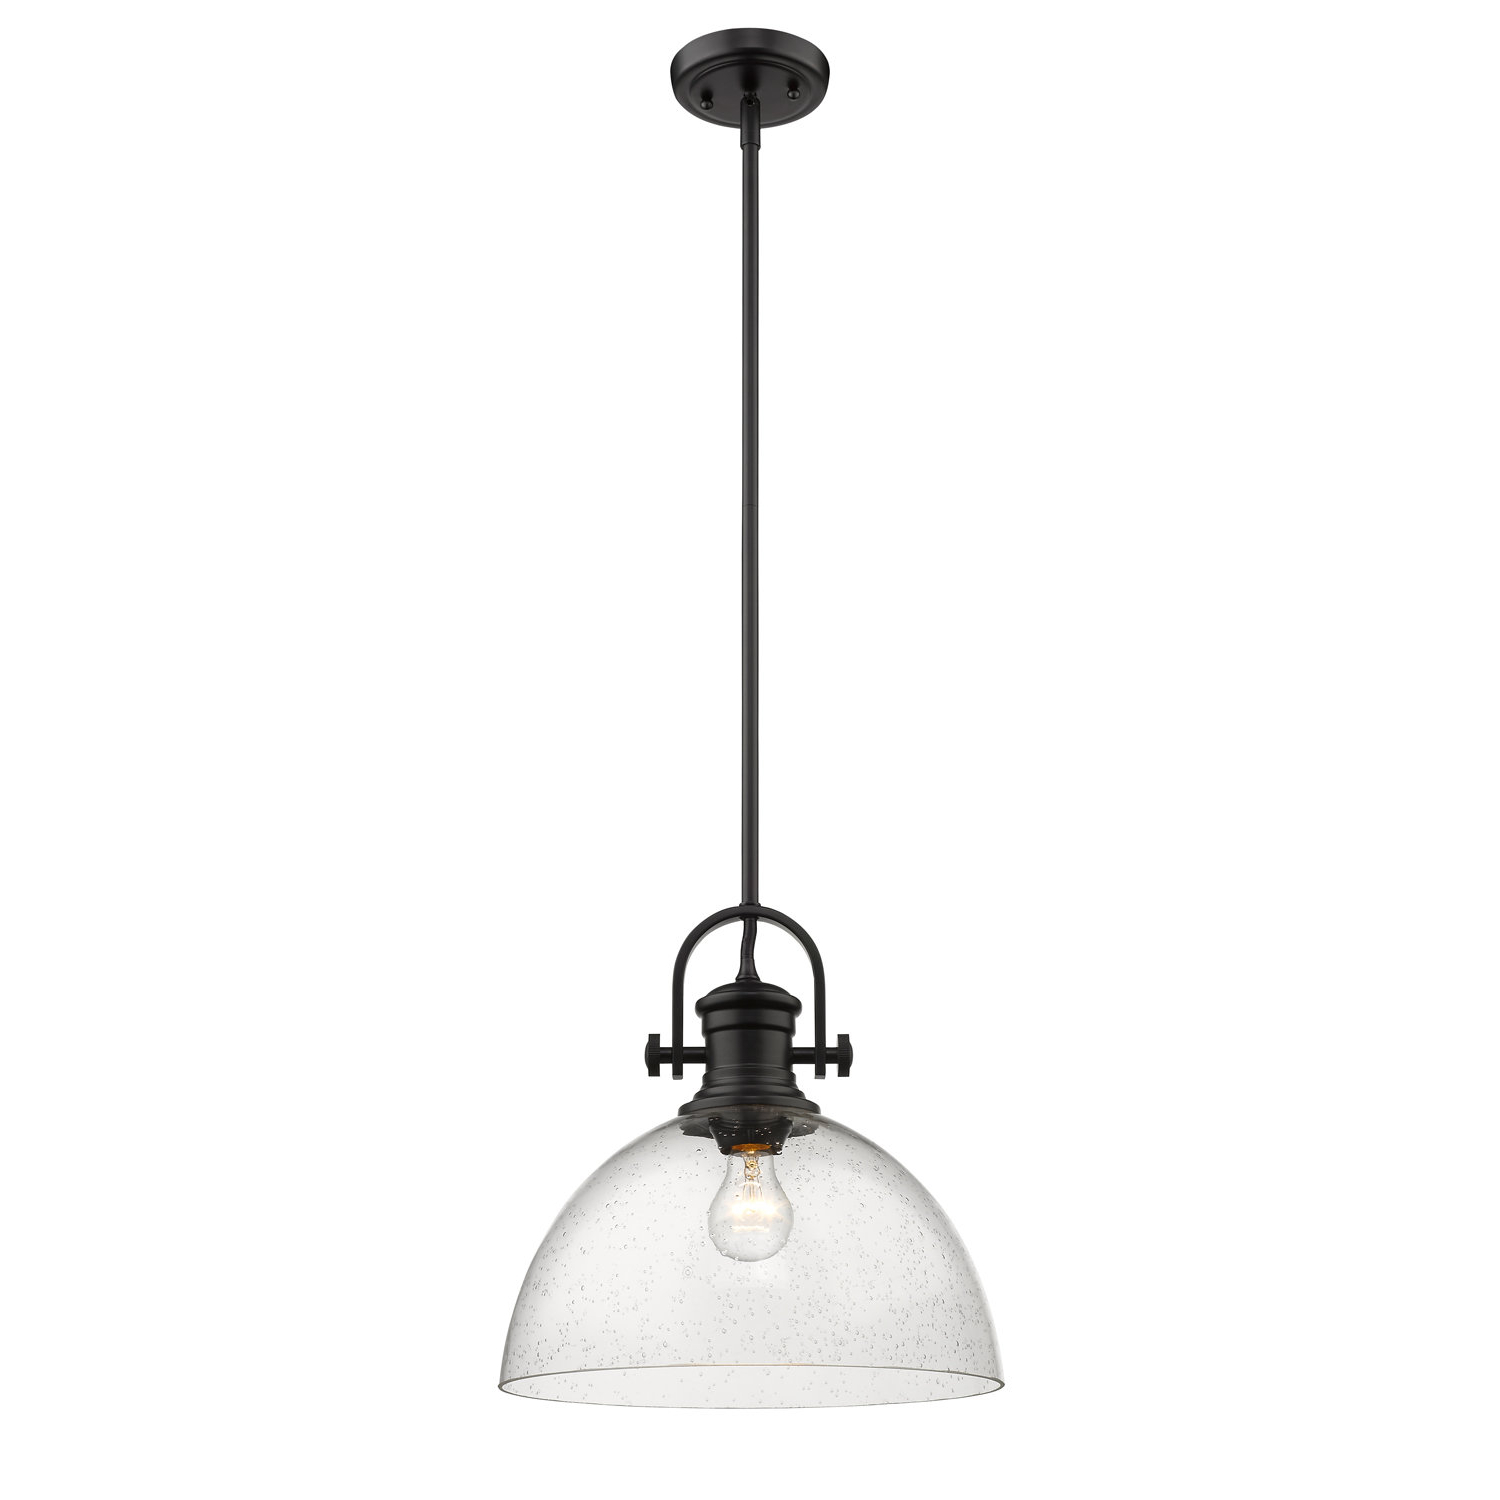 Granville 2 Light Single Dome Pendants Throughout Most Popular Vedder 1 Light Dome Pendant (View 19 of 25)